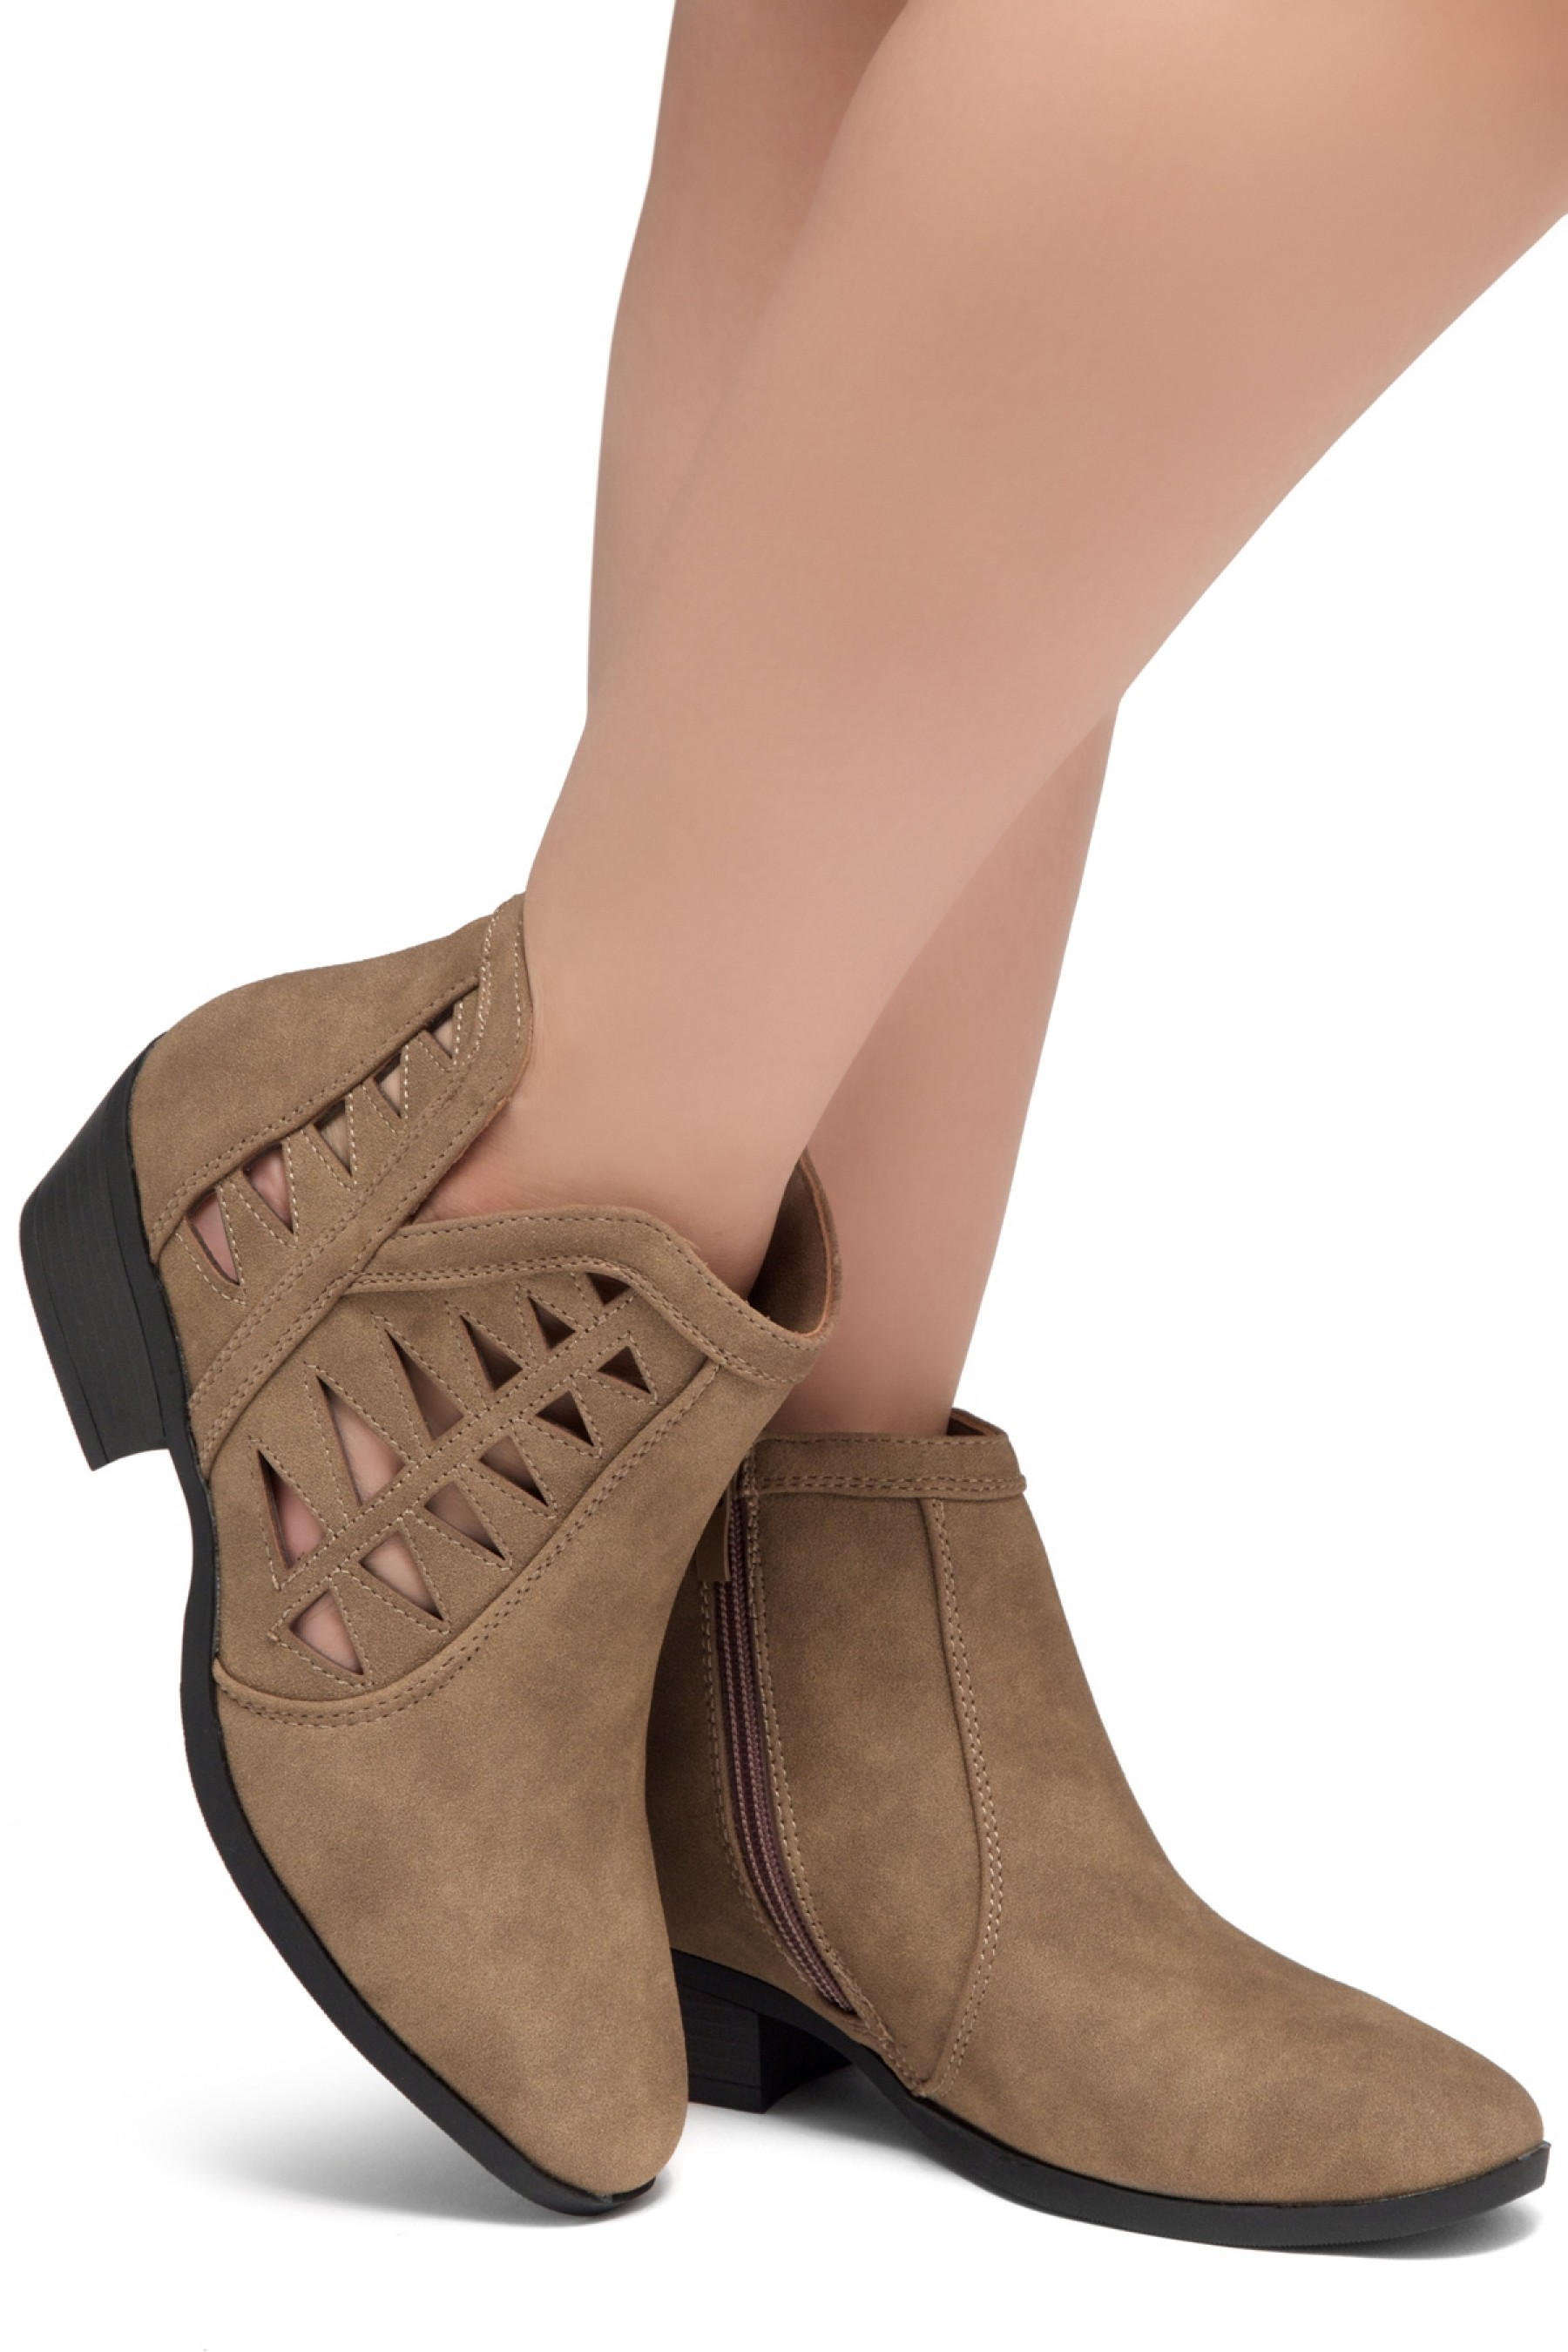 ShoeLand Sobrylla-Perforated Cutout Accents Stacked Low Heel Almond Toe Ankle Booties (Khaki)